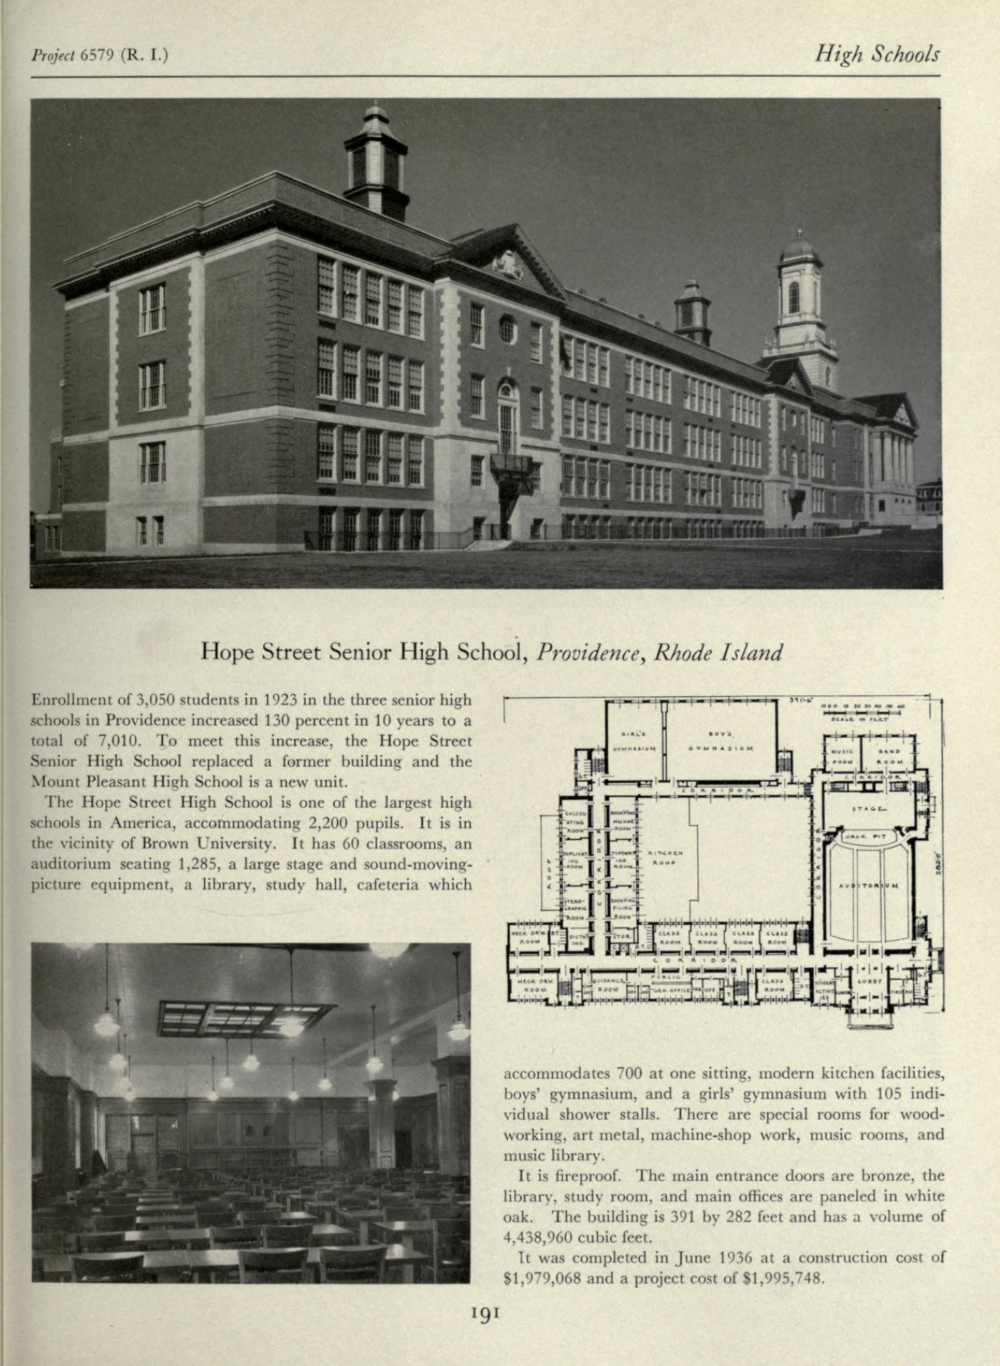 """From the book """"Public Buildings, Architecture under the Public Works Administration 1933-1939"""